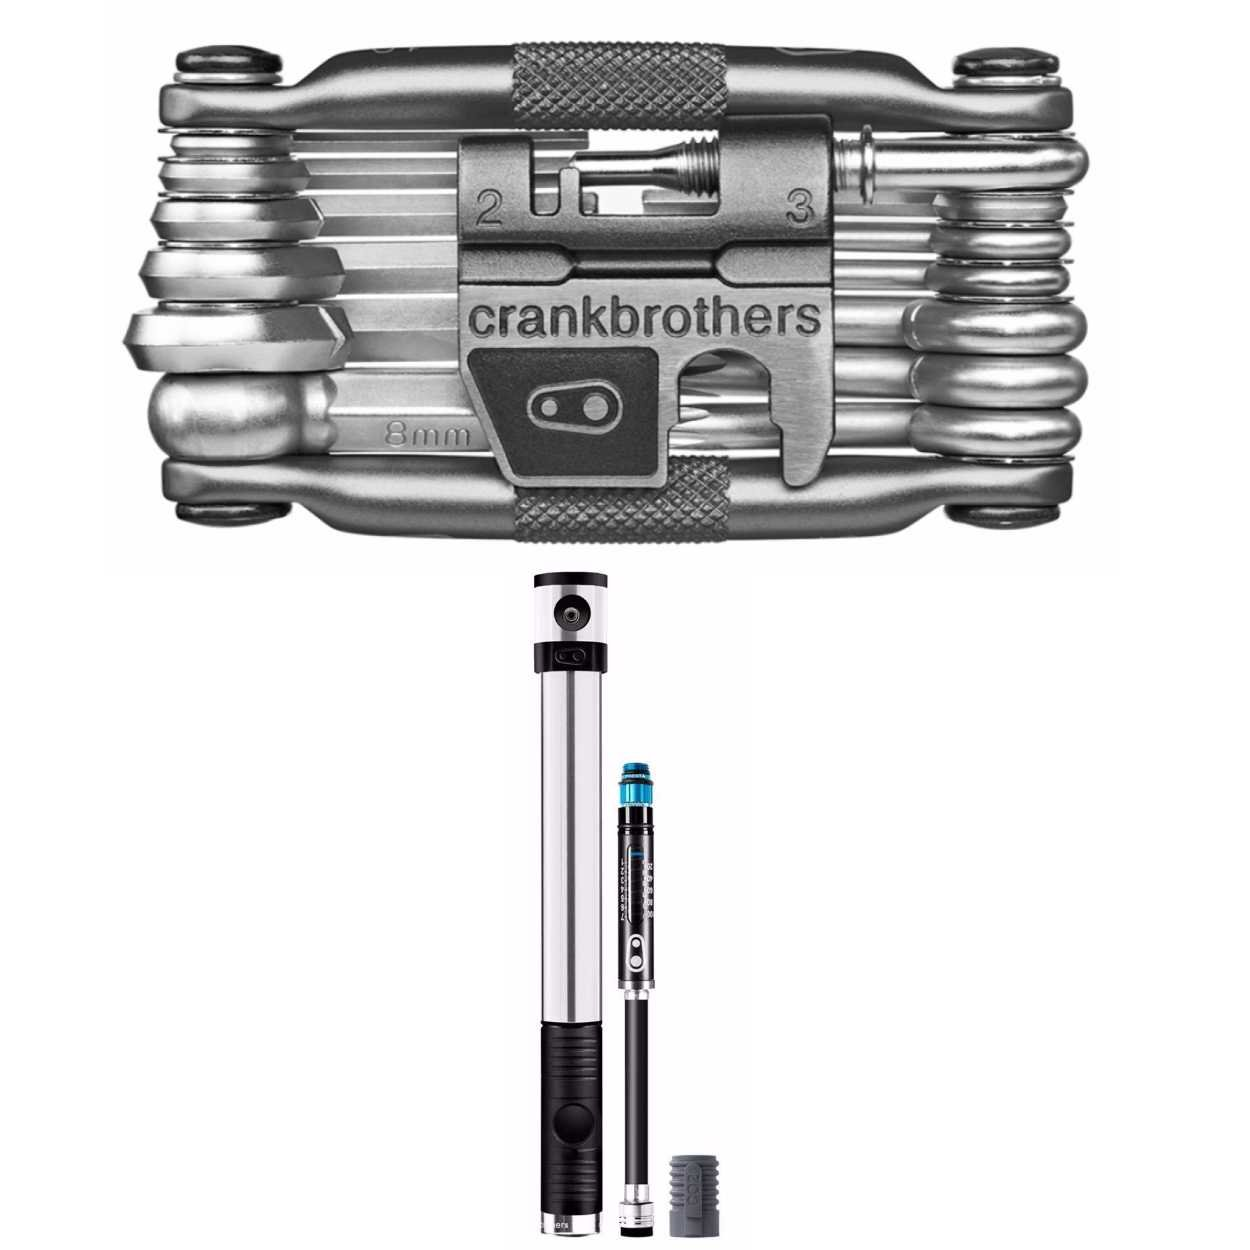 Crank Brothers Klic HP High Volume Bike Tire Pump with Co2 Adaptor and M19 Multi Bicycle Tool Kit